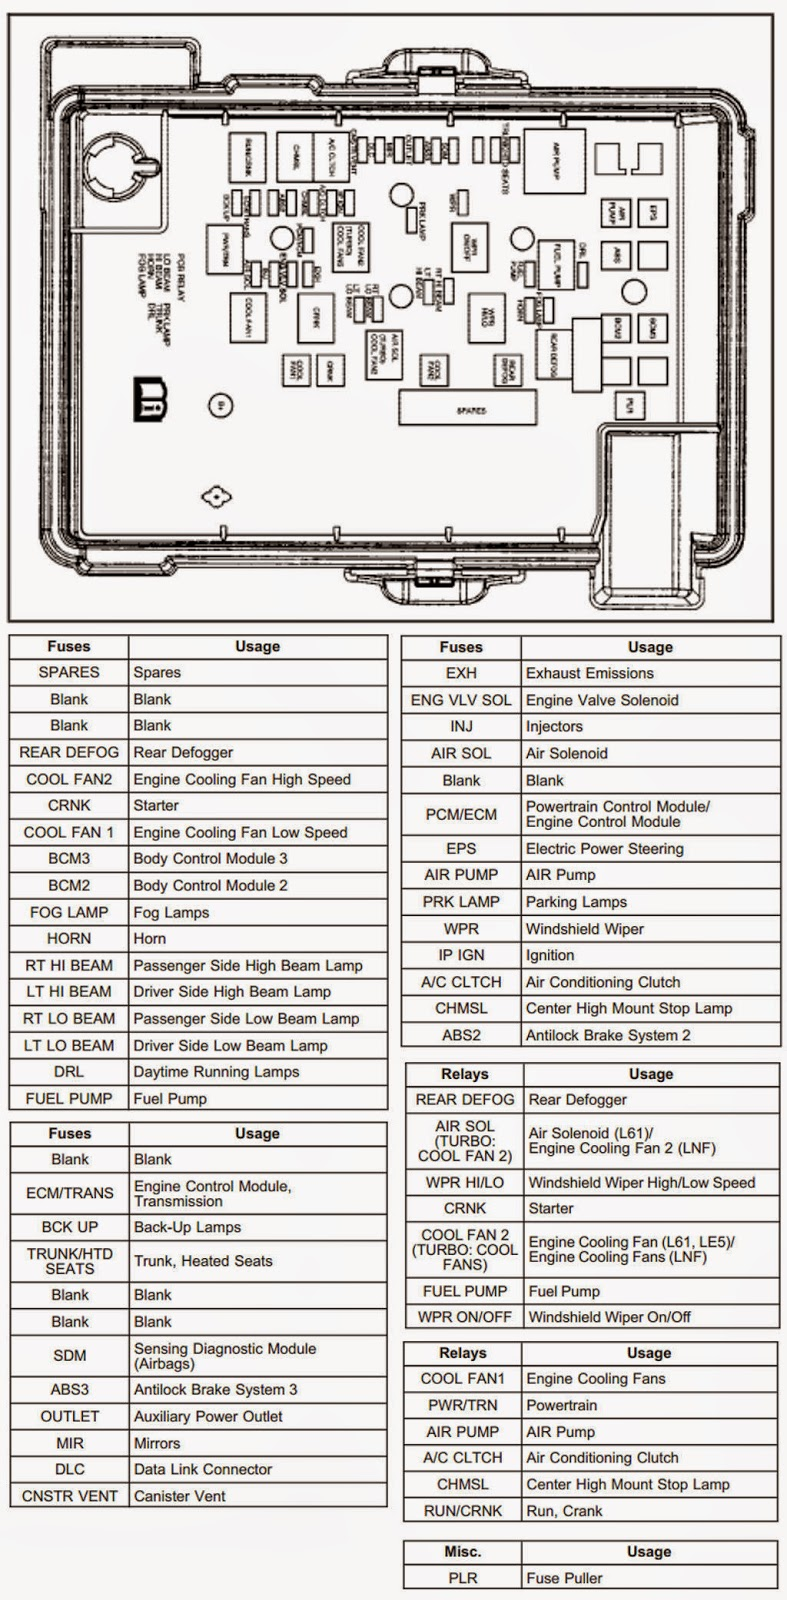 2005 Cobalt Fuse Box Simple Wiring Diagram Bonneville 2006 Chevrolet Schemes